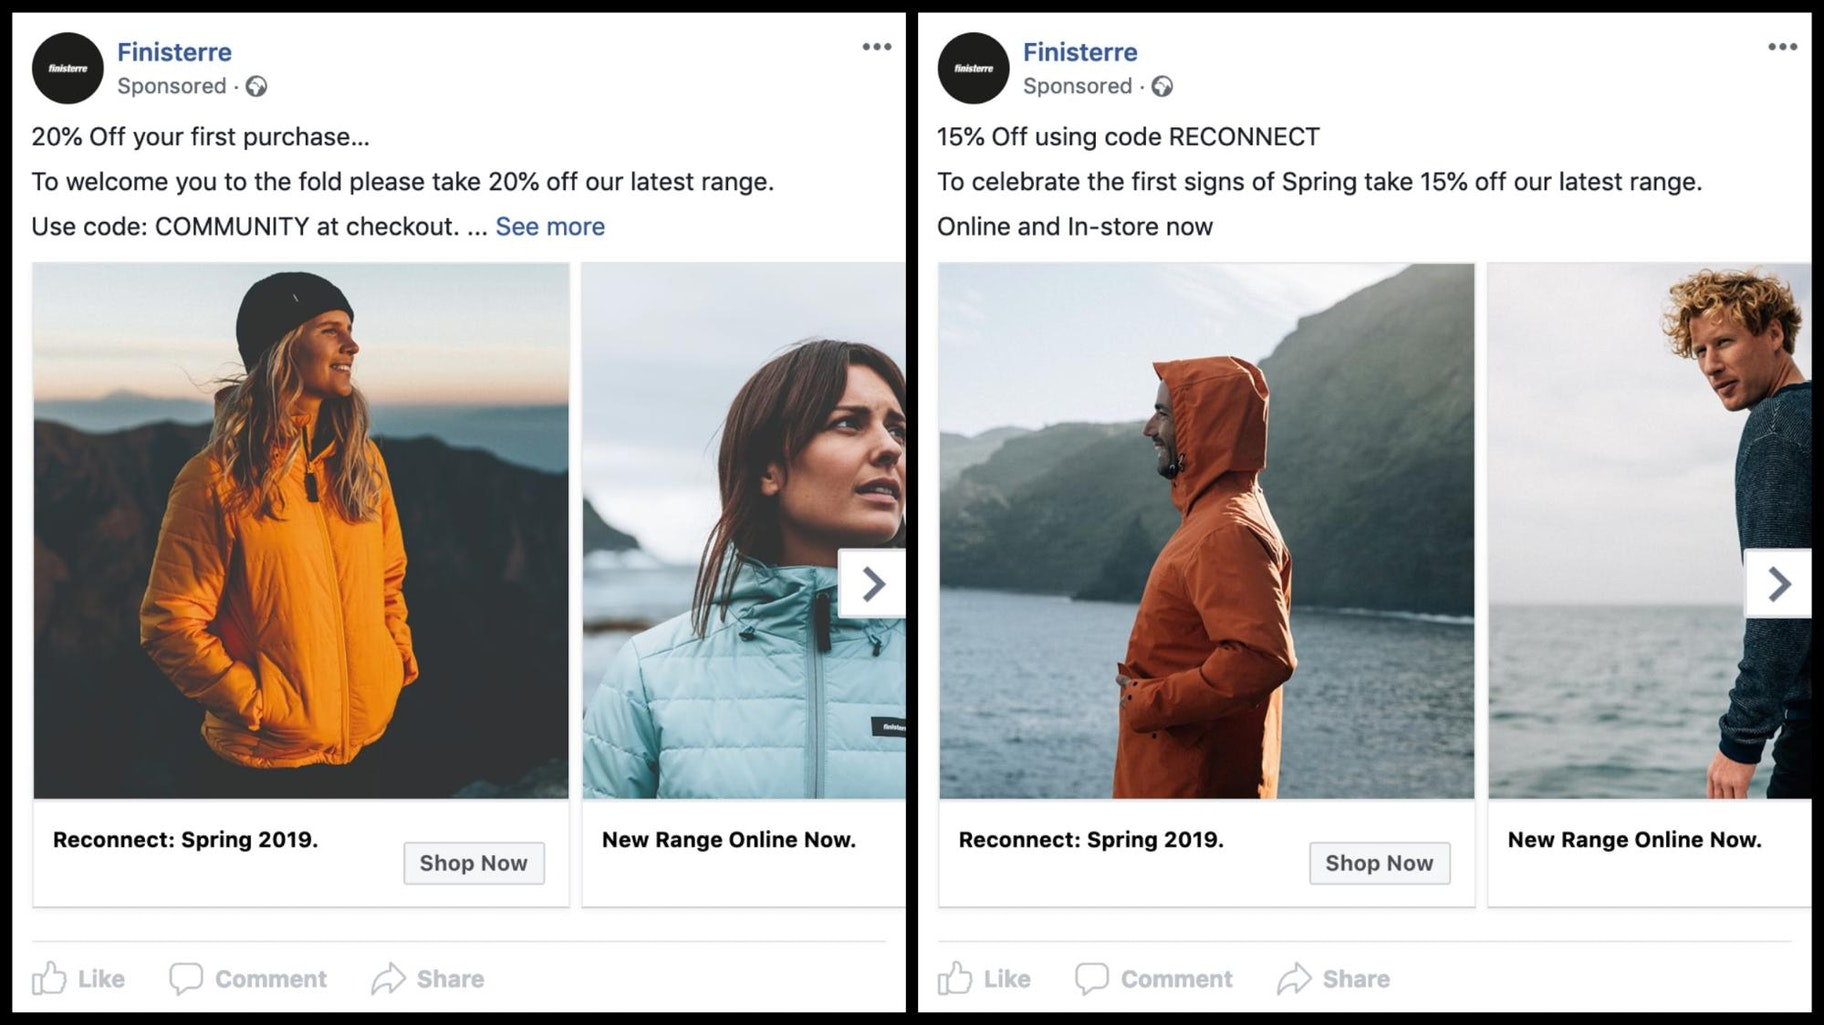 Finisterre Facebook Info and Ads